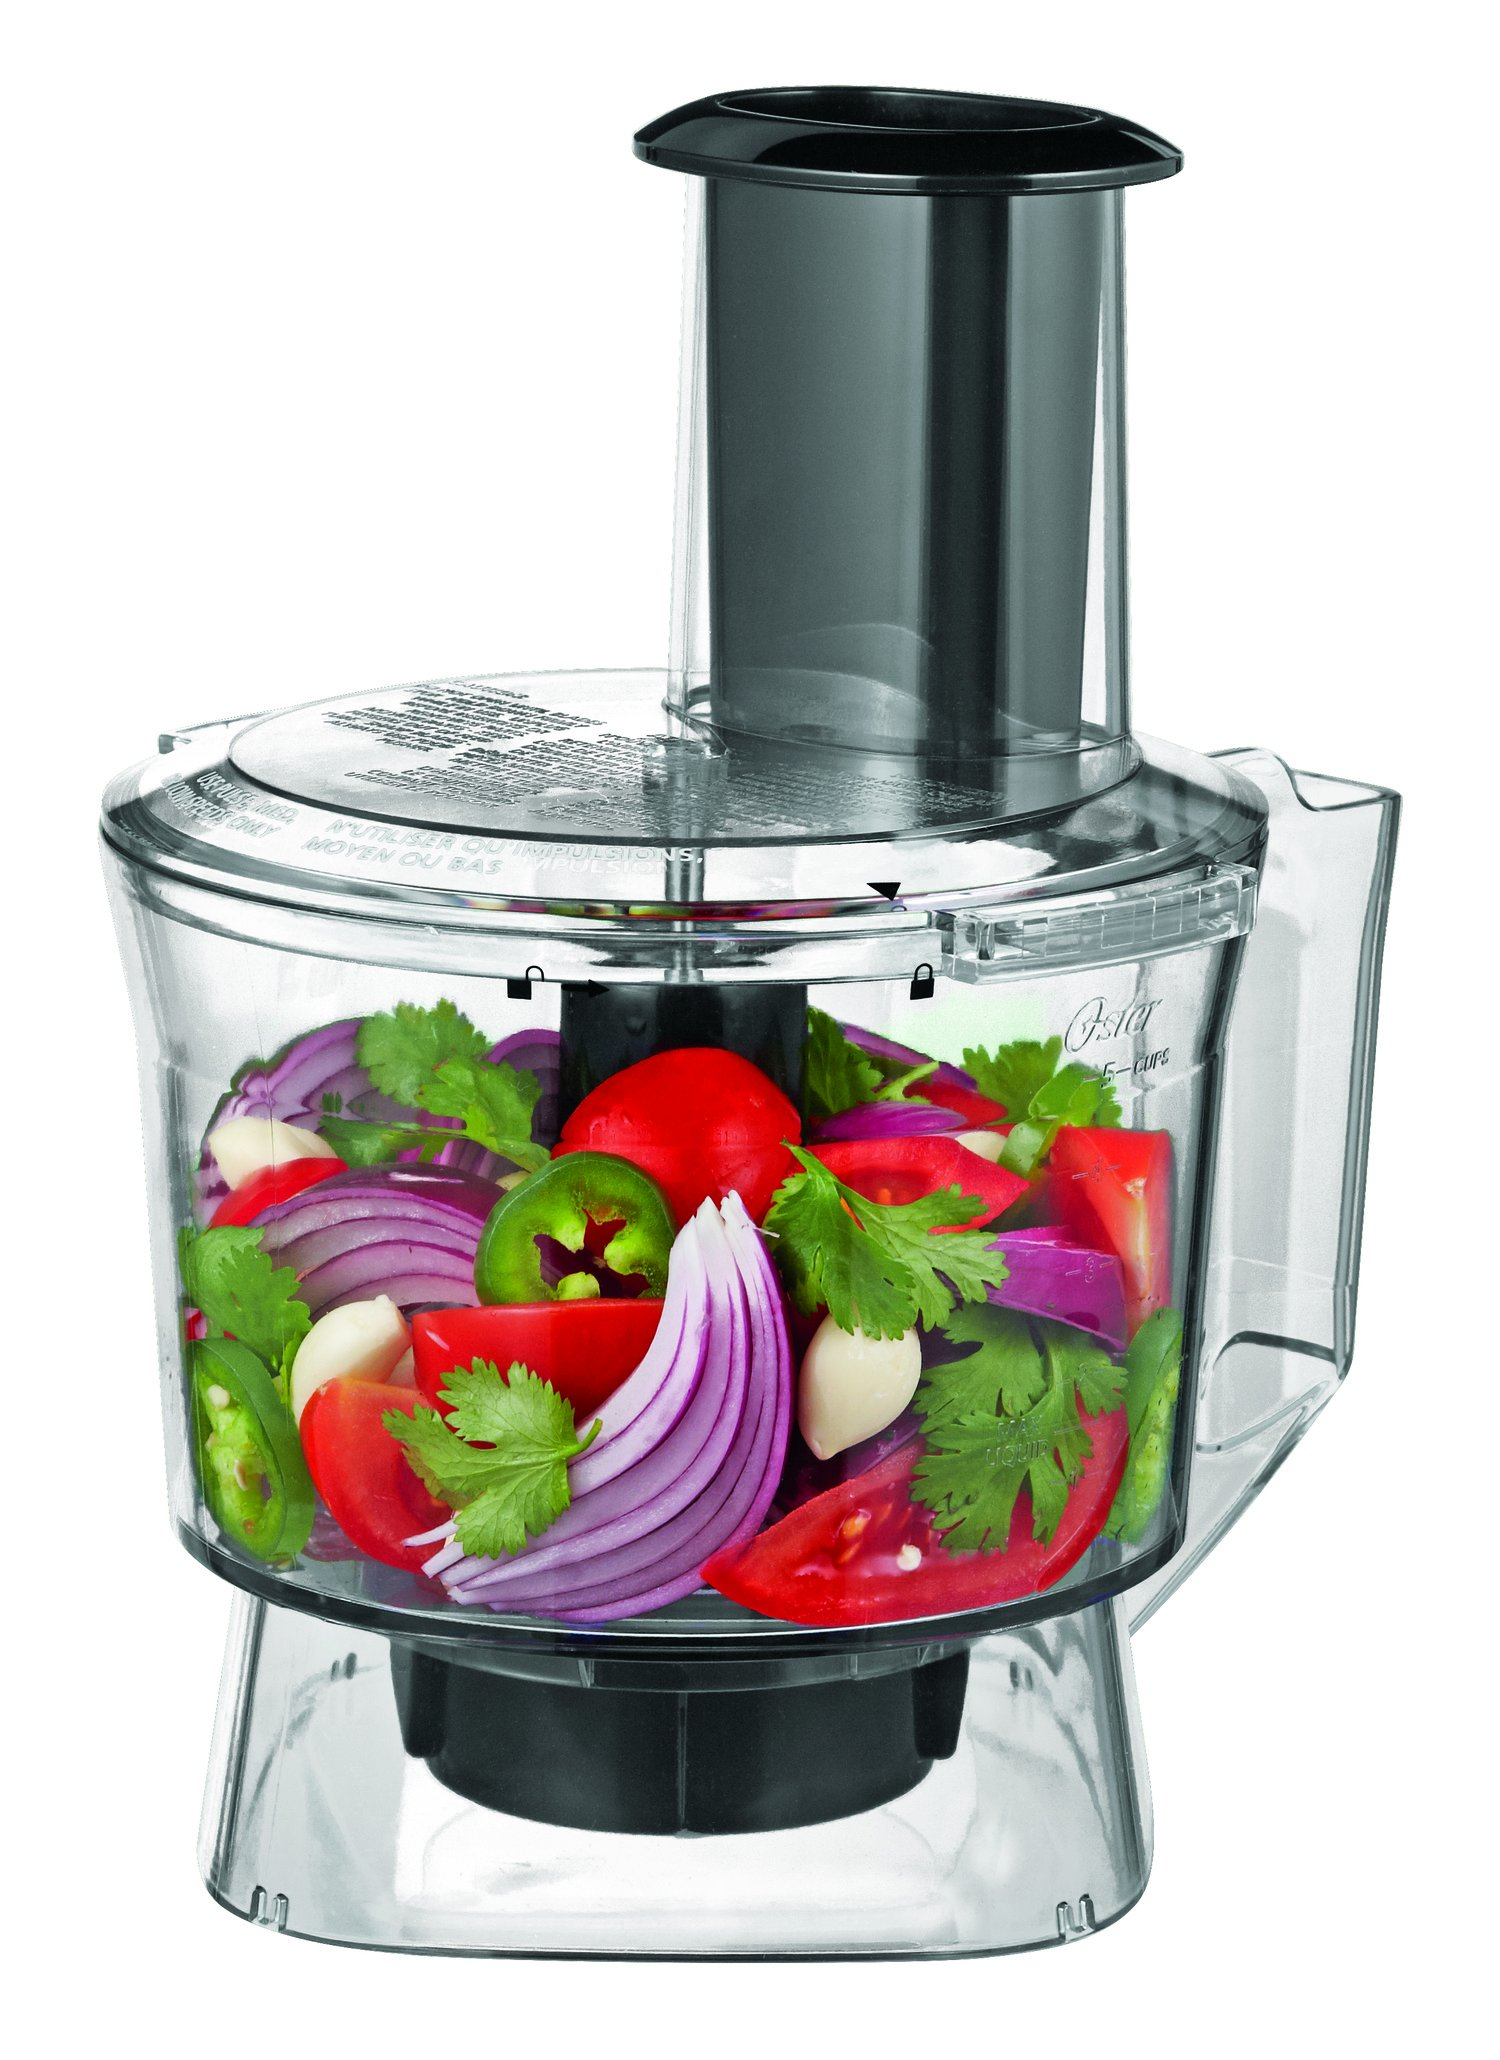 Oster Pro 1200 Blender with Glass Jar plus Smoothie Cup & Food Processor Attachment, Brushed Nickel by Oster (Image #8)